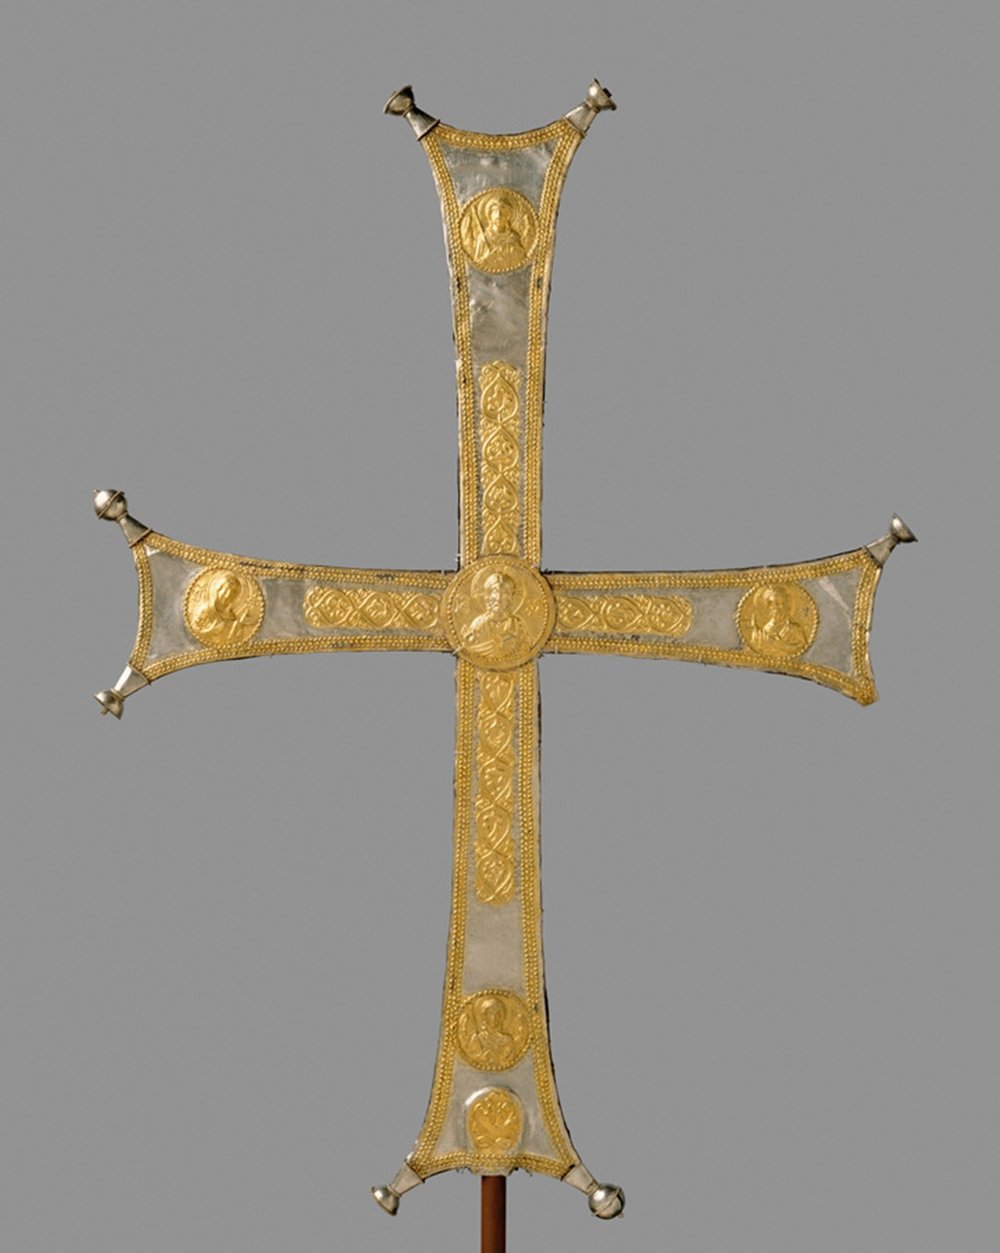 Byzantine cross, from the Met Museum's Heavenly Bodies exhibit.